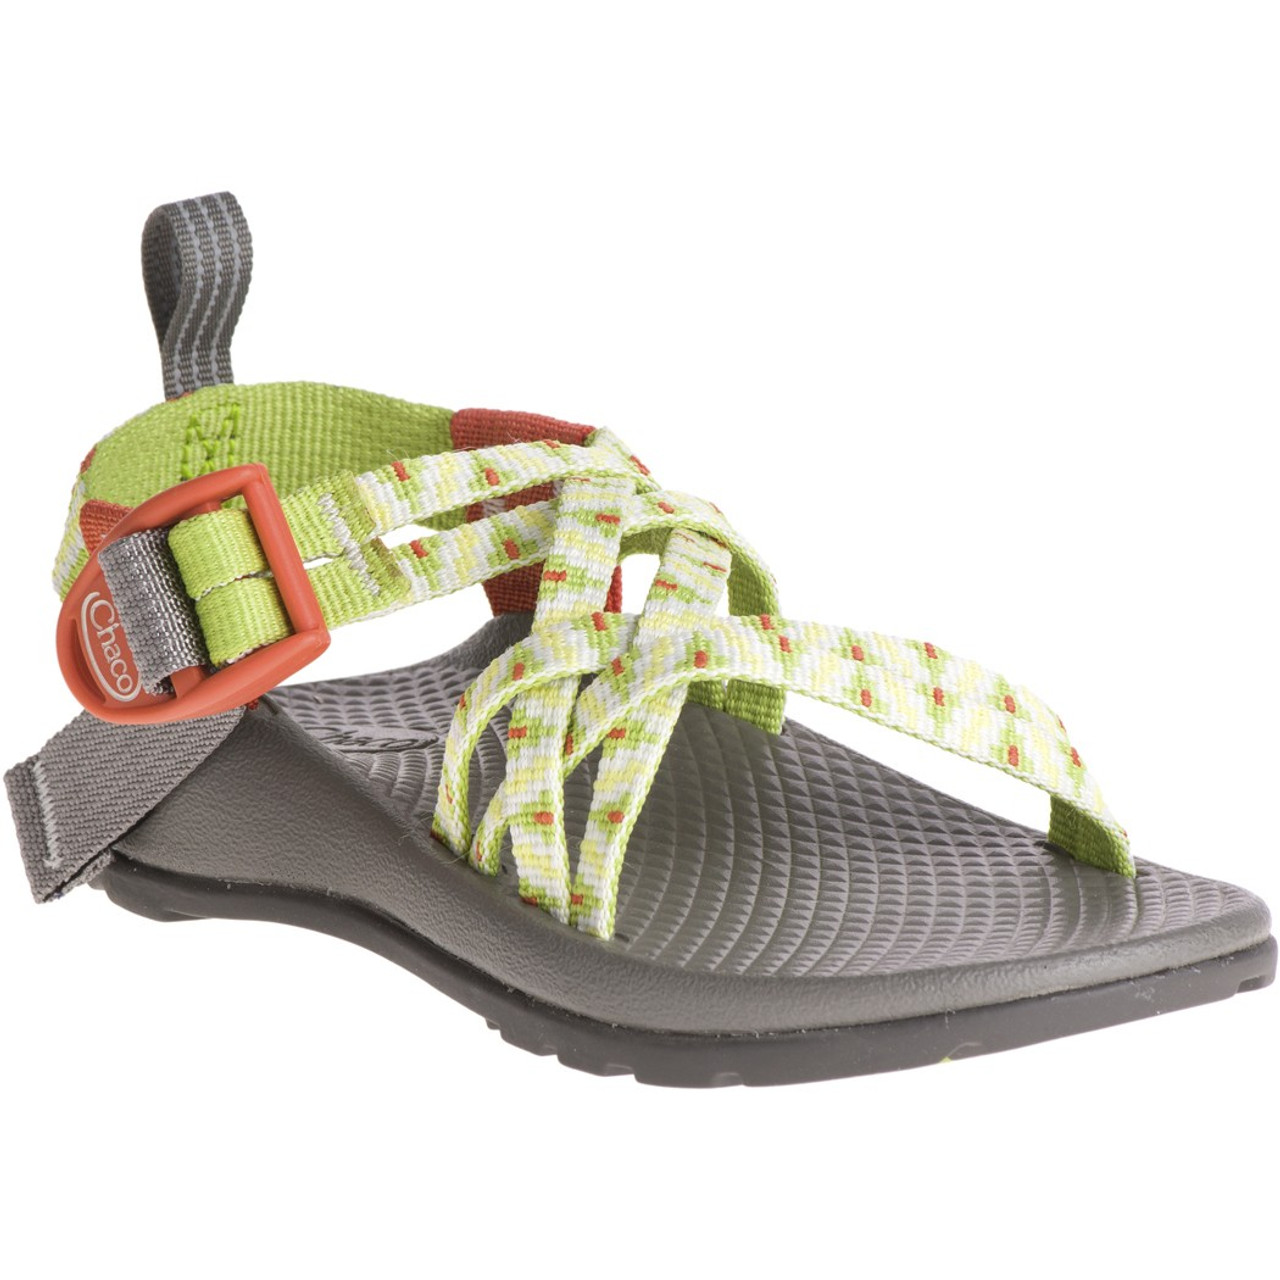 1b259f605b3f Chacos Kid s Sandals - ZX 1 Ecotread - Zigzag Greenery - Surf and Dirt